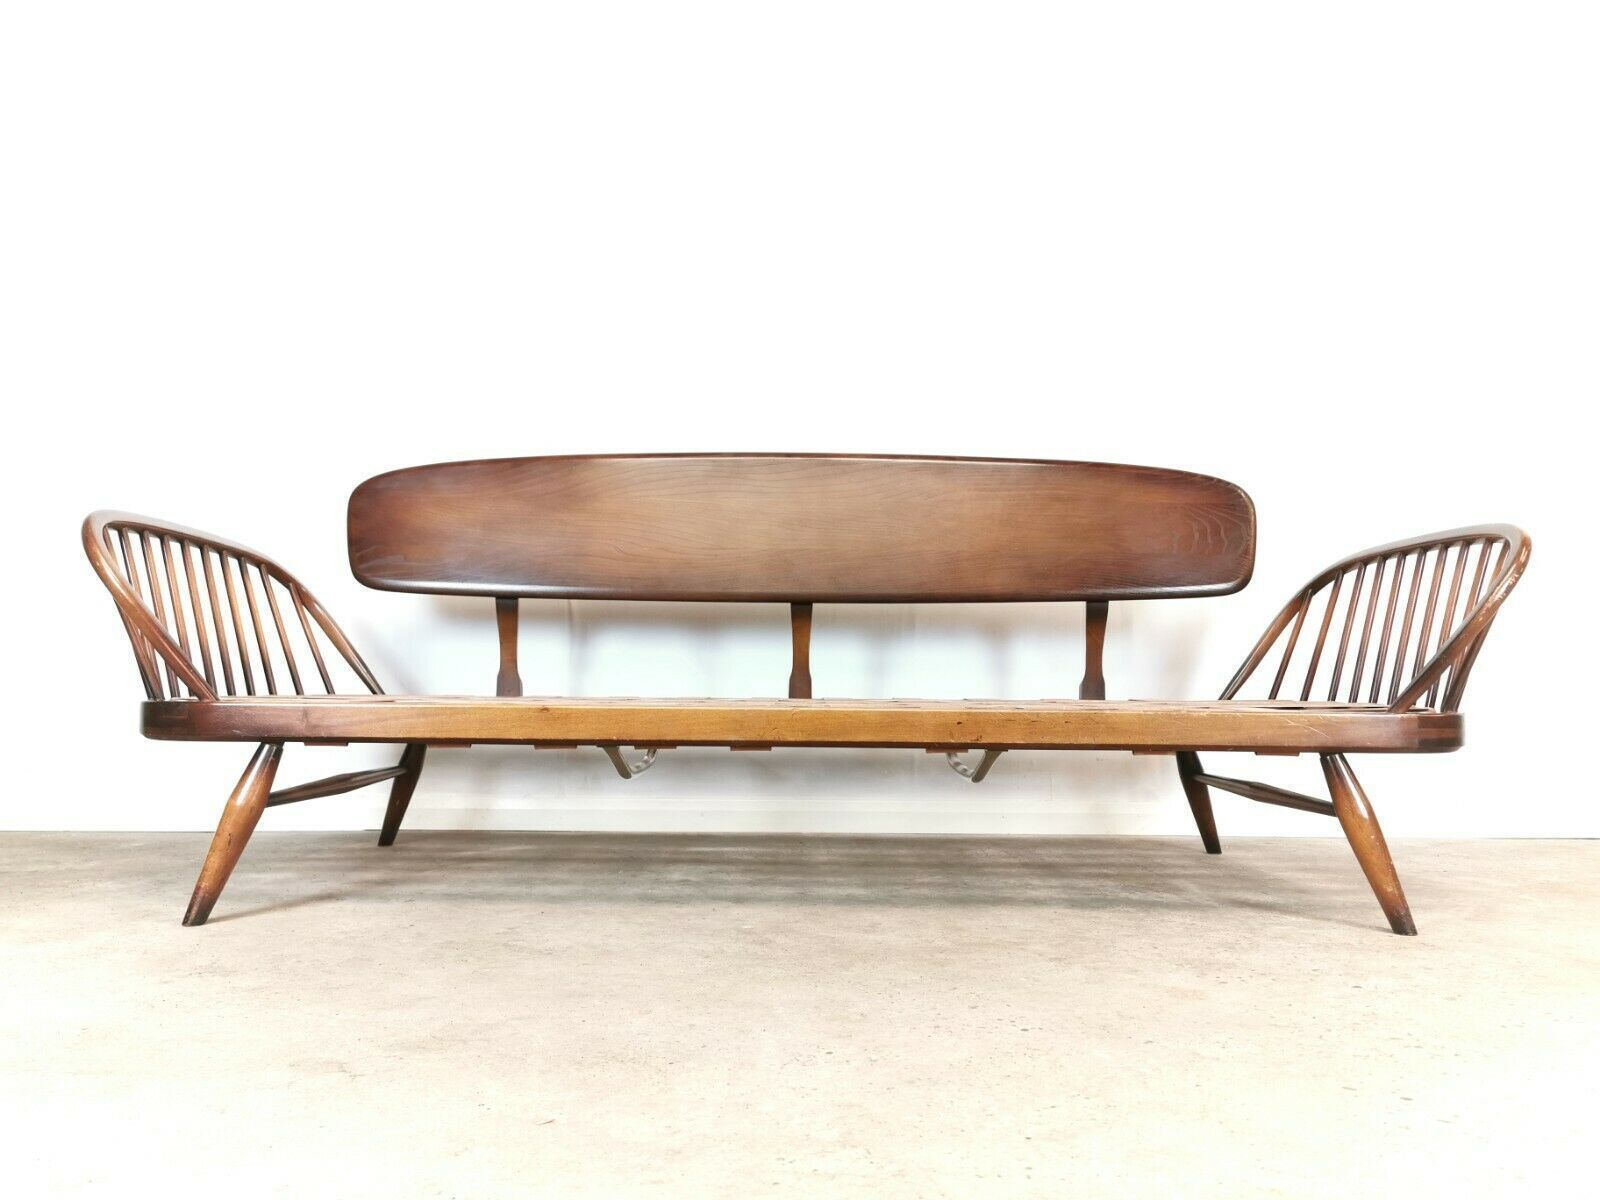 Vintage Ercol Mid Century Studio Day Bed Couch Sofa Retro Cushions